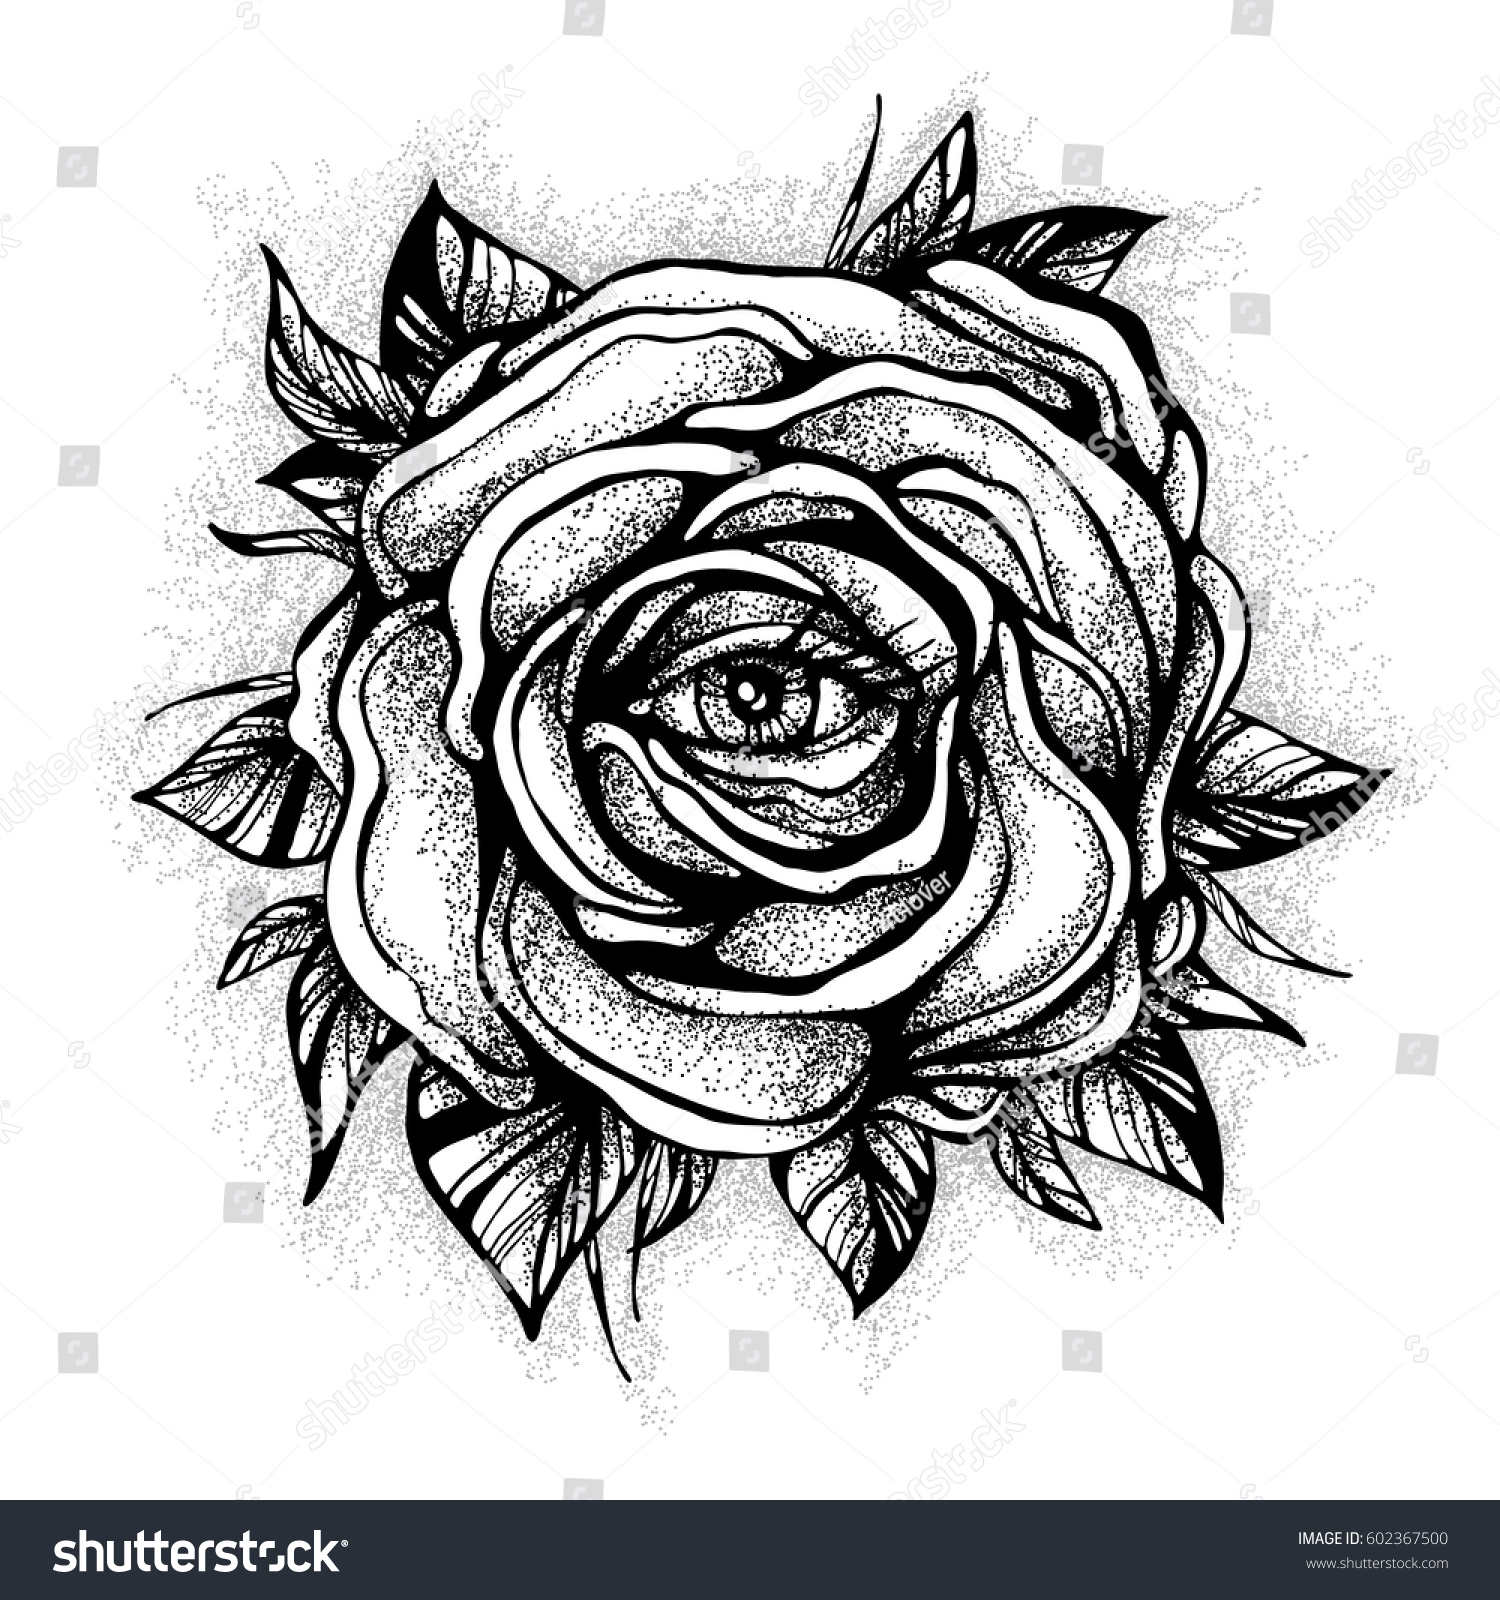 Black Tattoo Rose Flower Eye On Stock Vector 602367500